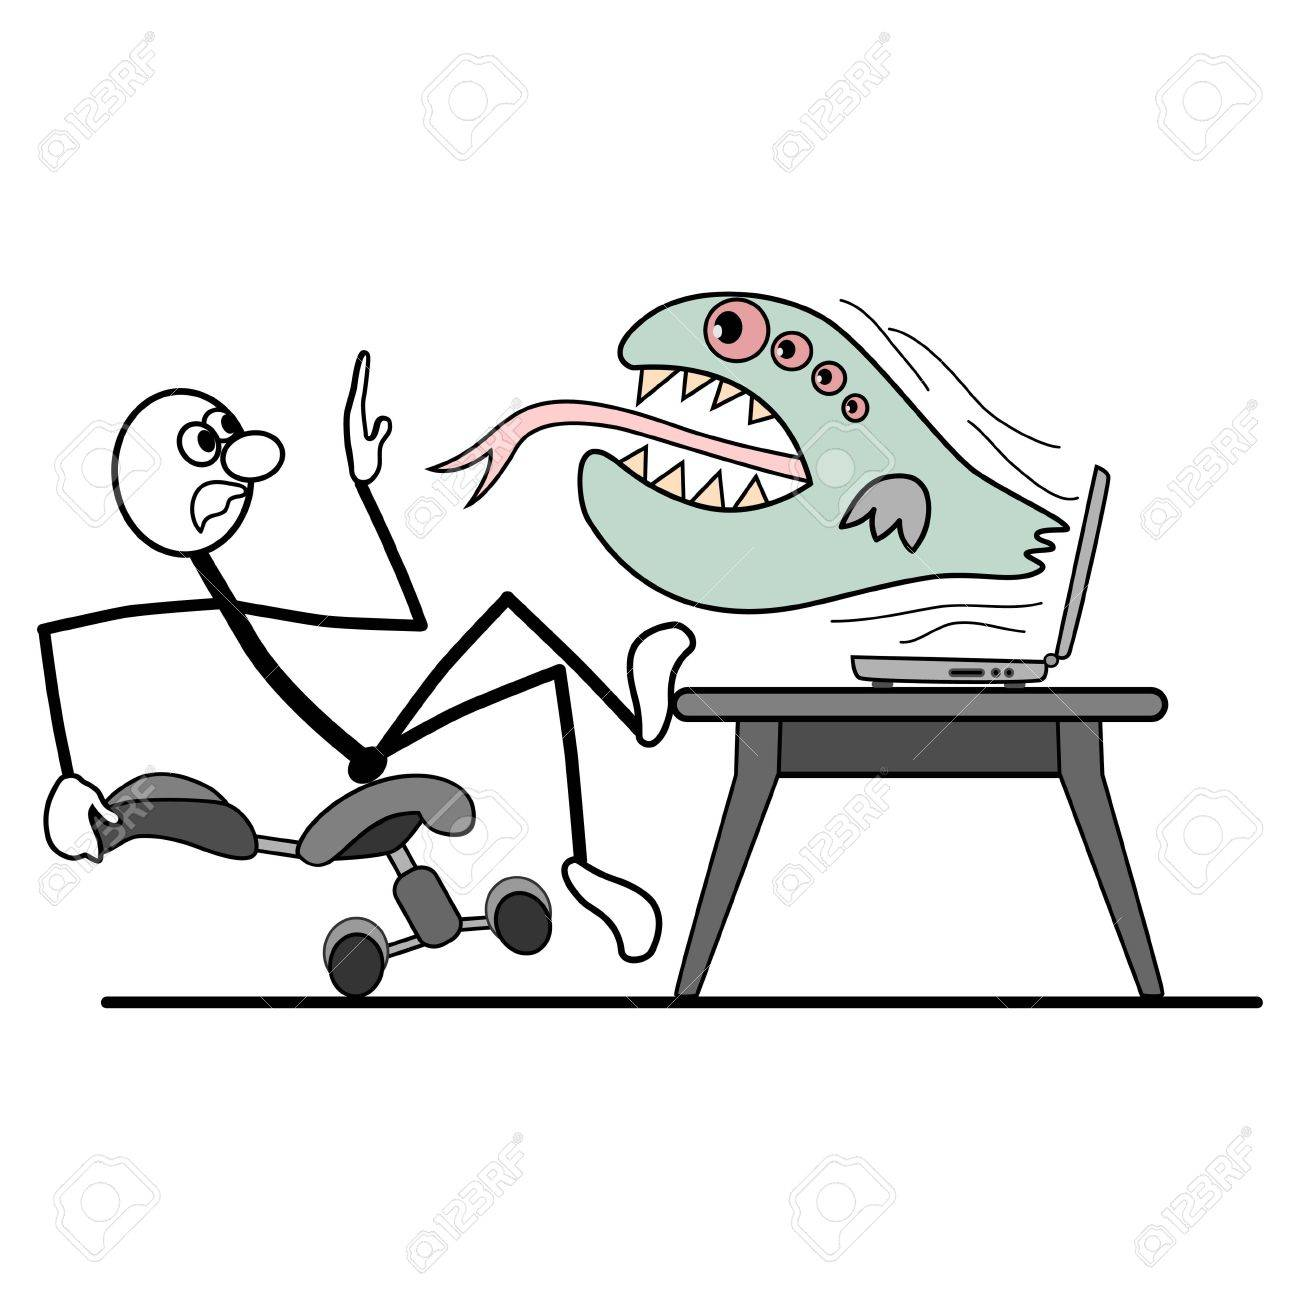 from computer crashes virus. man falls from his chair. Stock Vector - 15053435